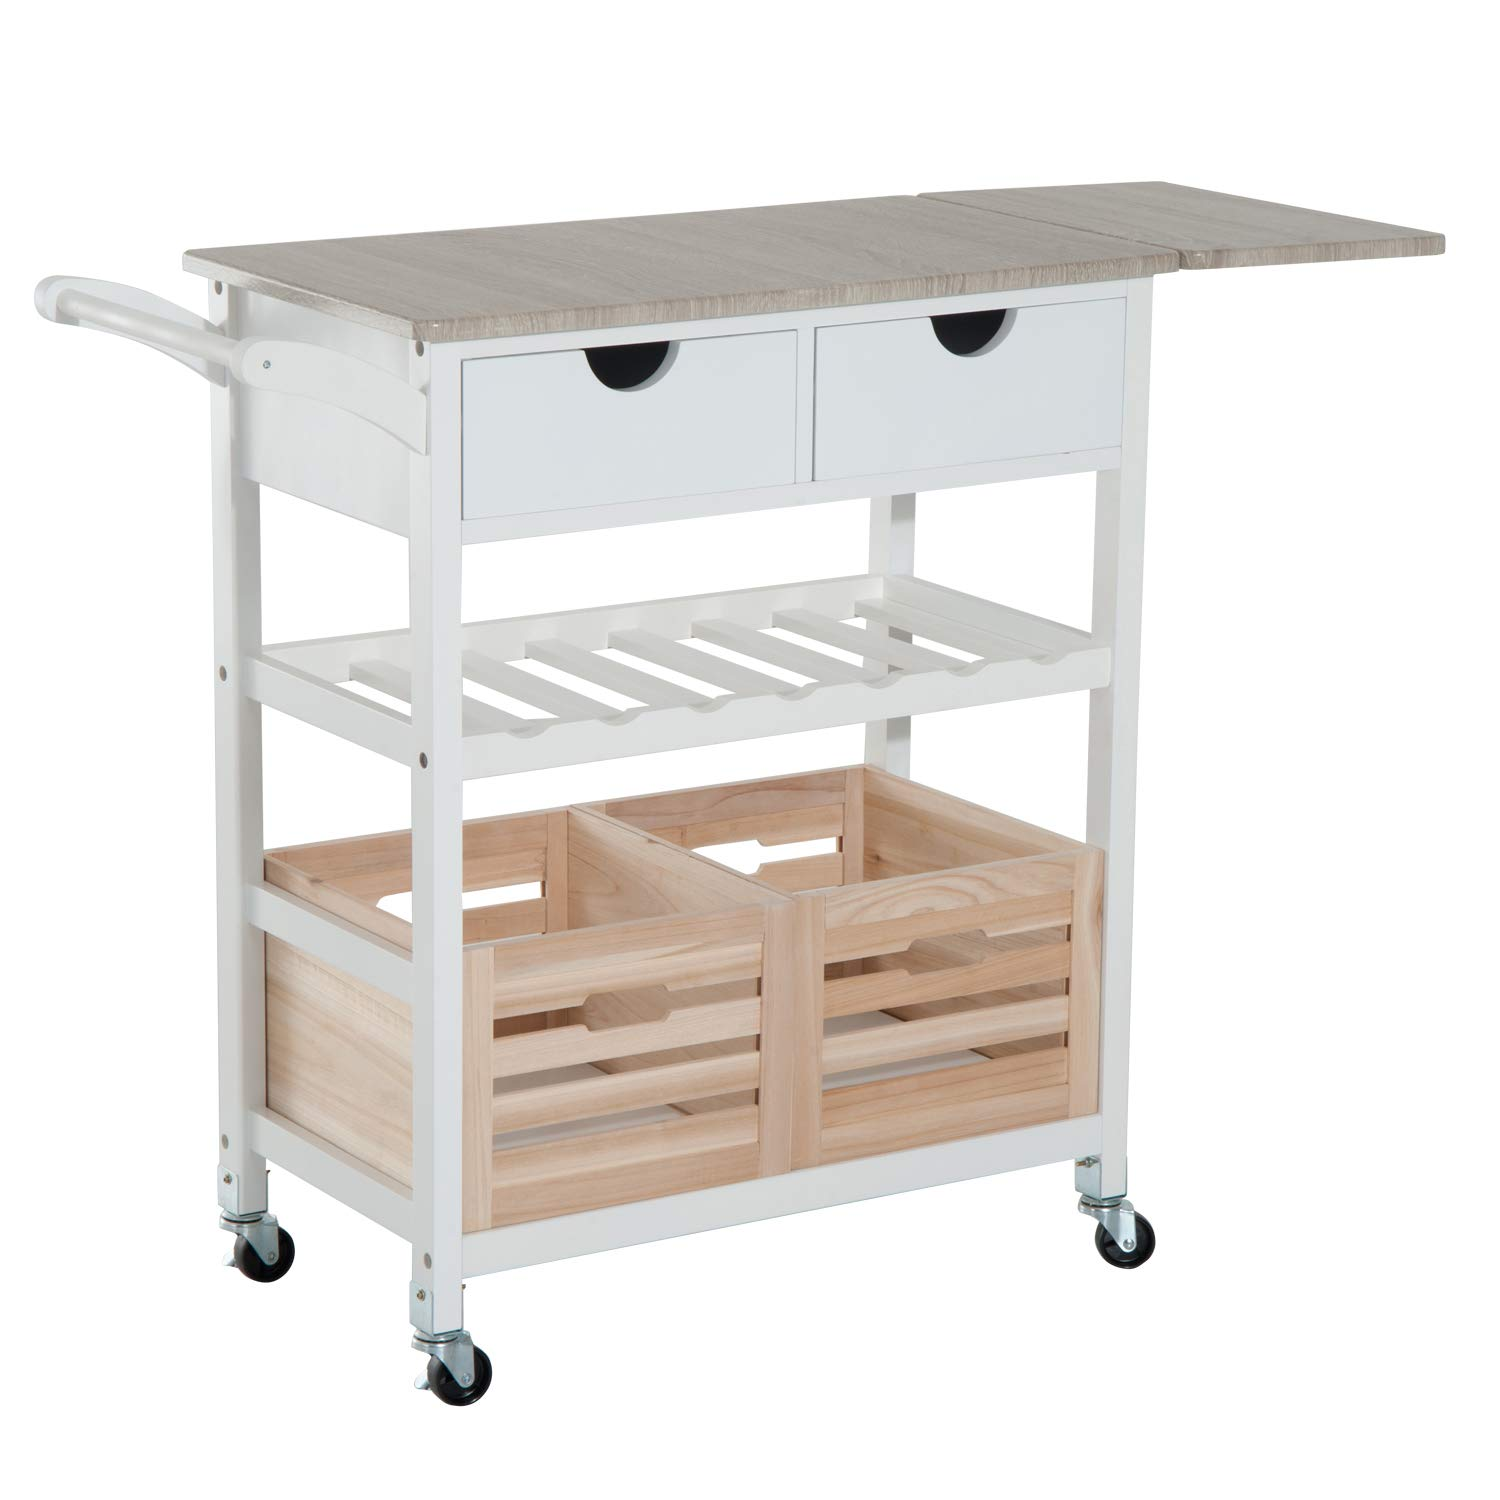 """Details about HomCom 34"""" Rolling Drop-Leaf Kitchen Trolley Serving Cart  with Wine Rack -"""